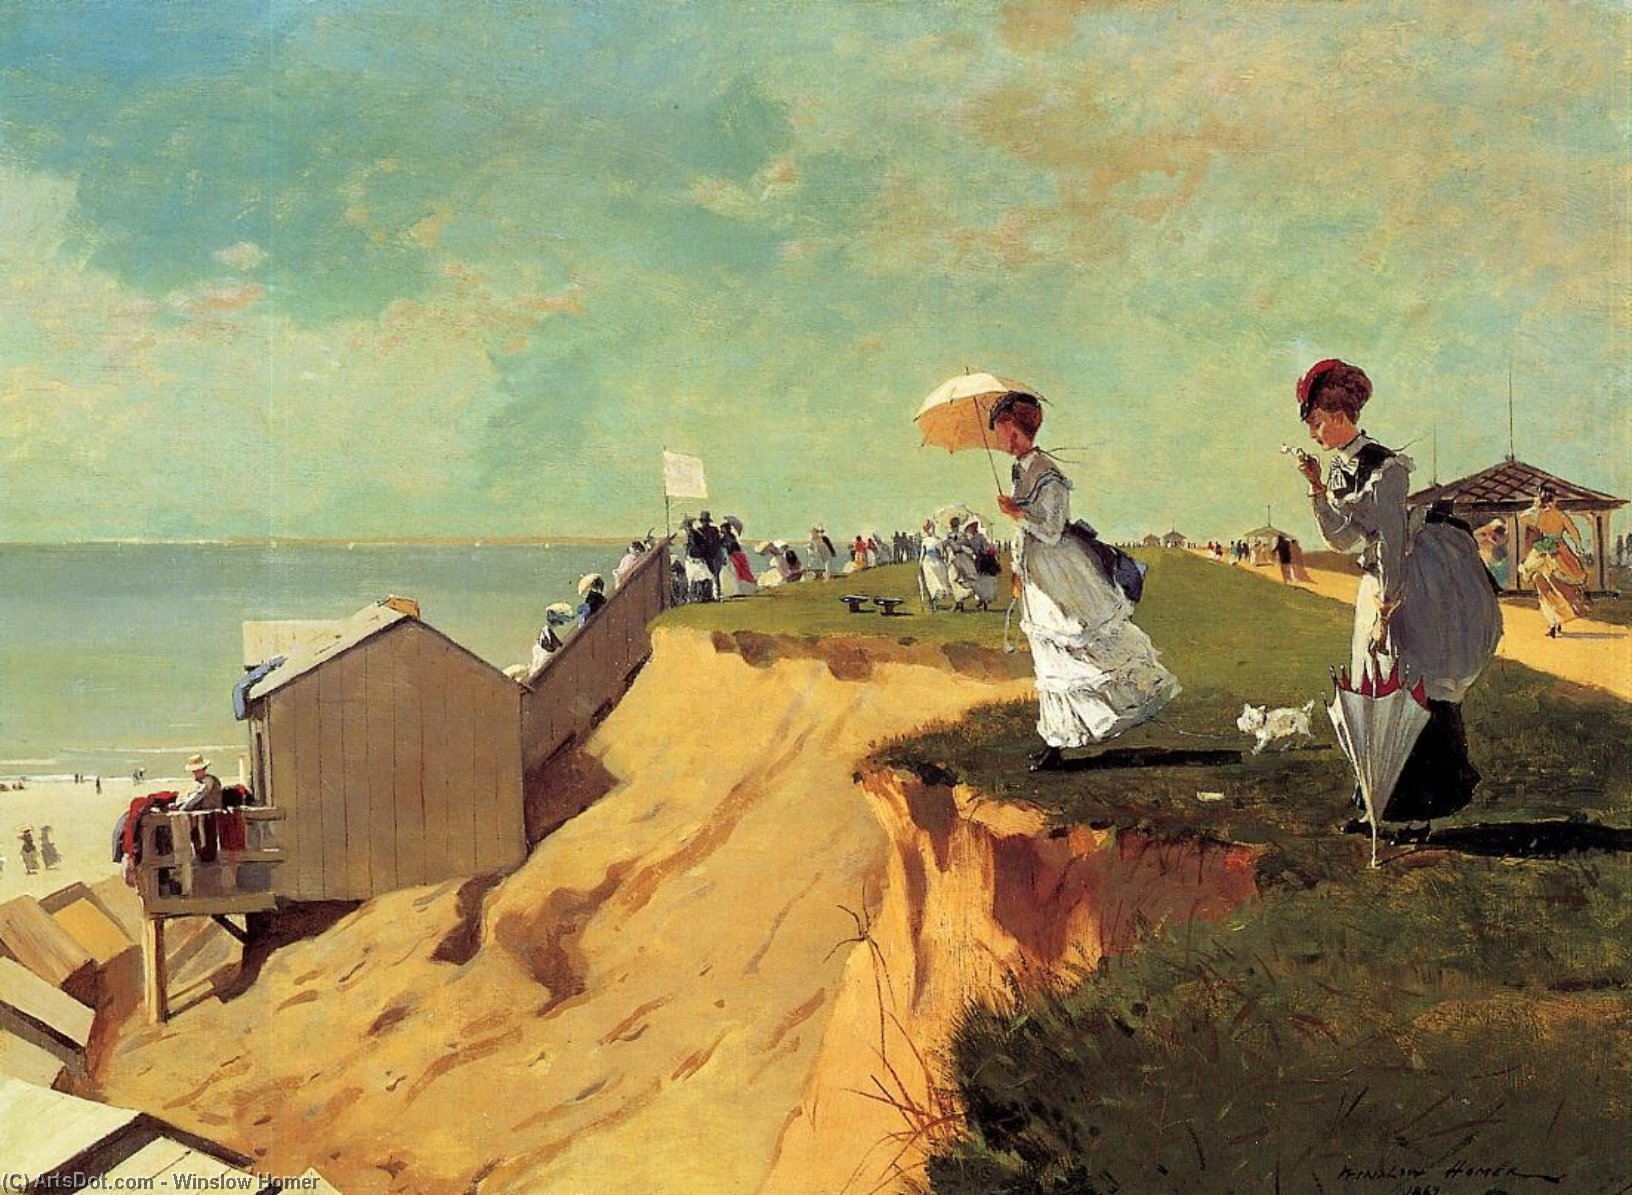 Long Branch, New Jersey, 1869 by Winslow Homer (1836-1910, United States) | Art Reproductions Winslow Homer | ArtsDot.com